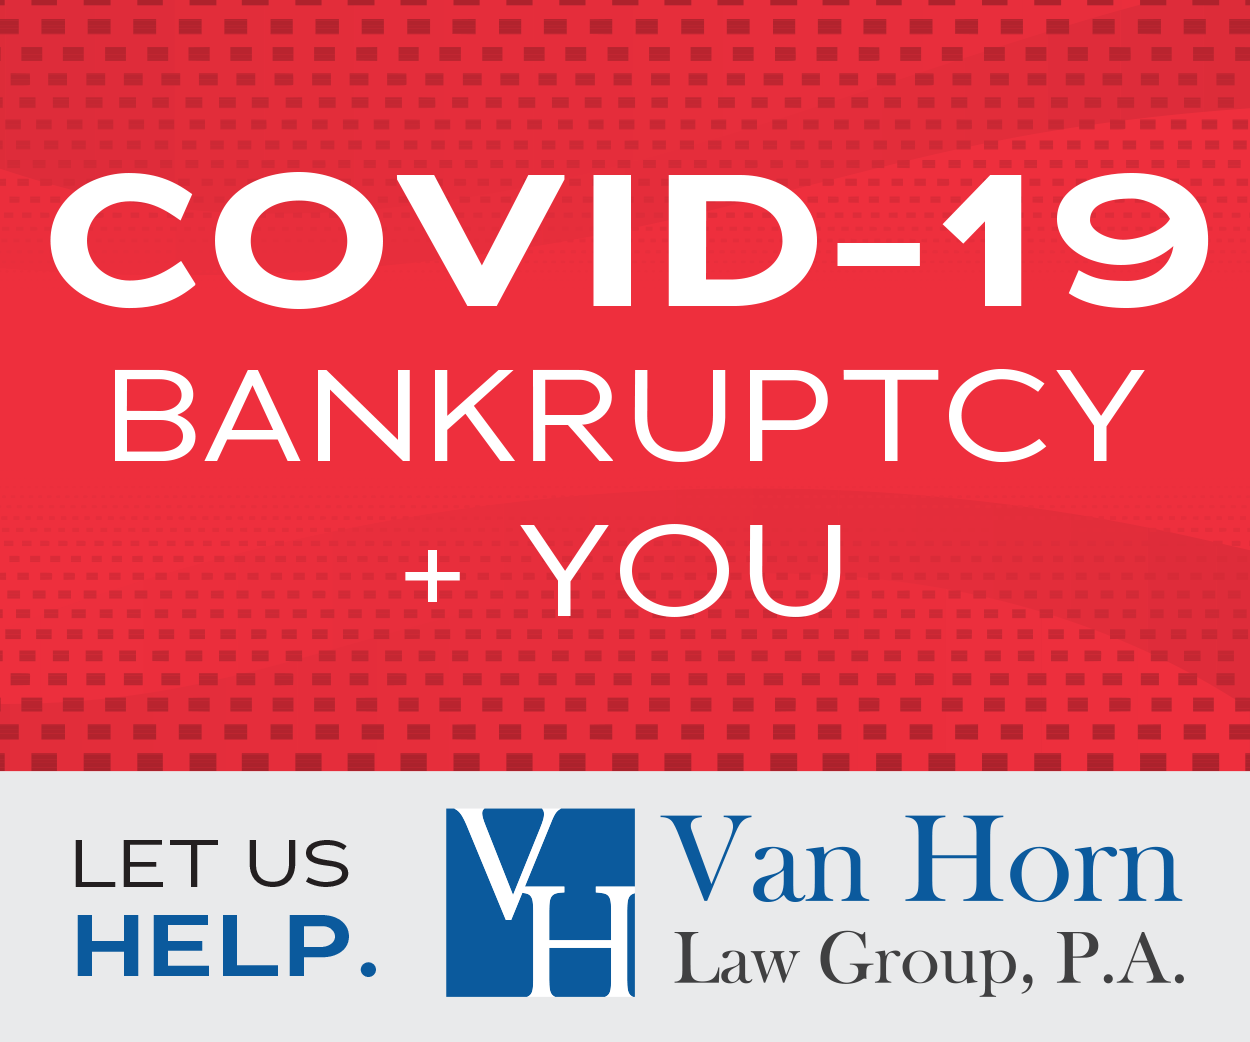 Covid19 - Van Horn Law Group, P.A.